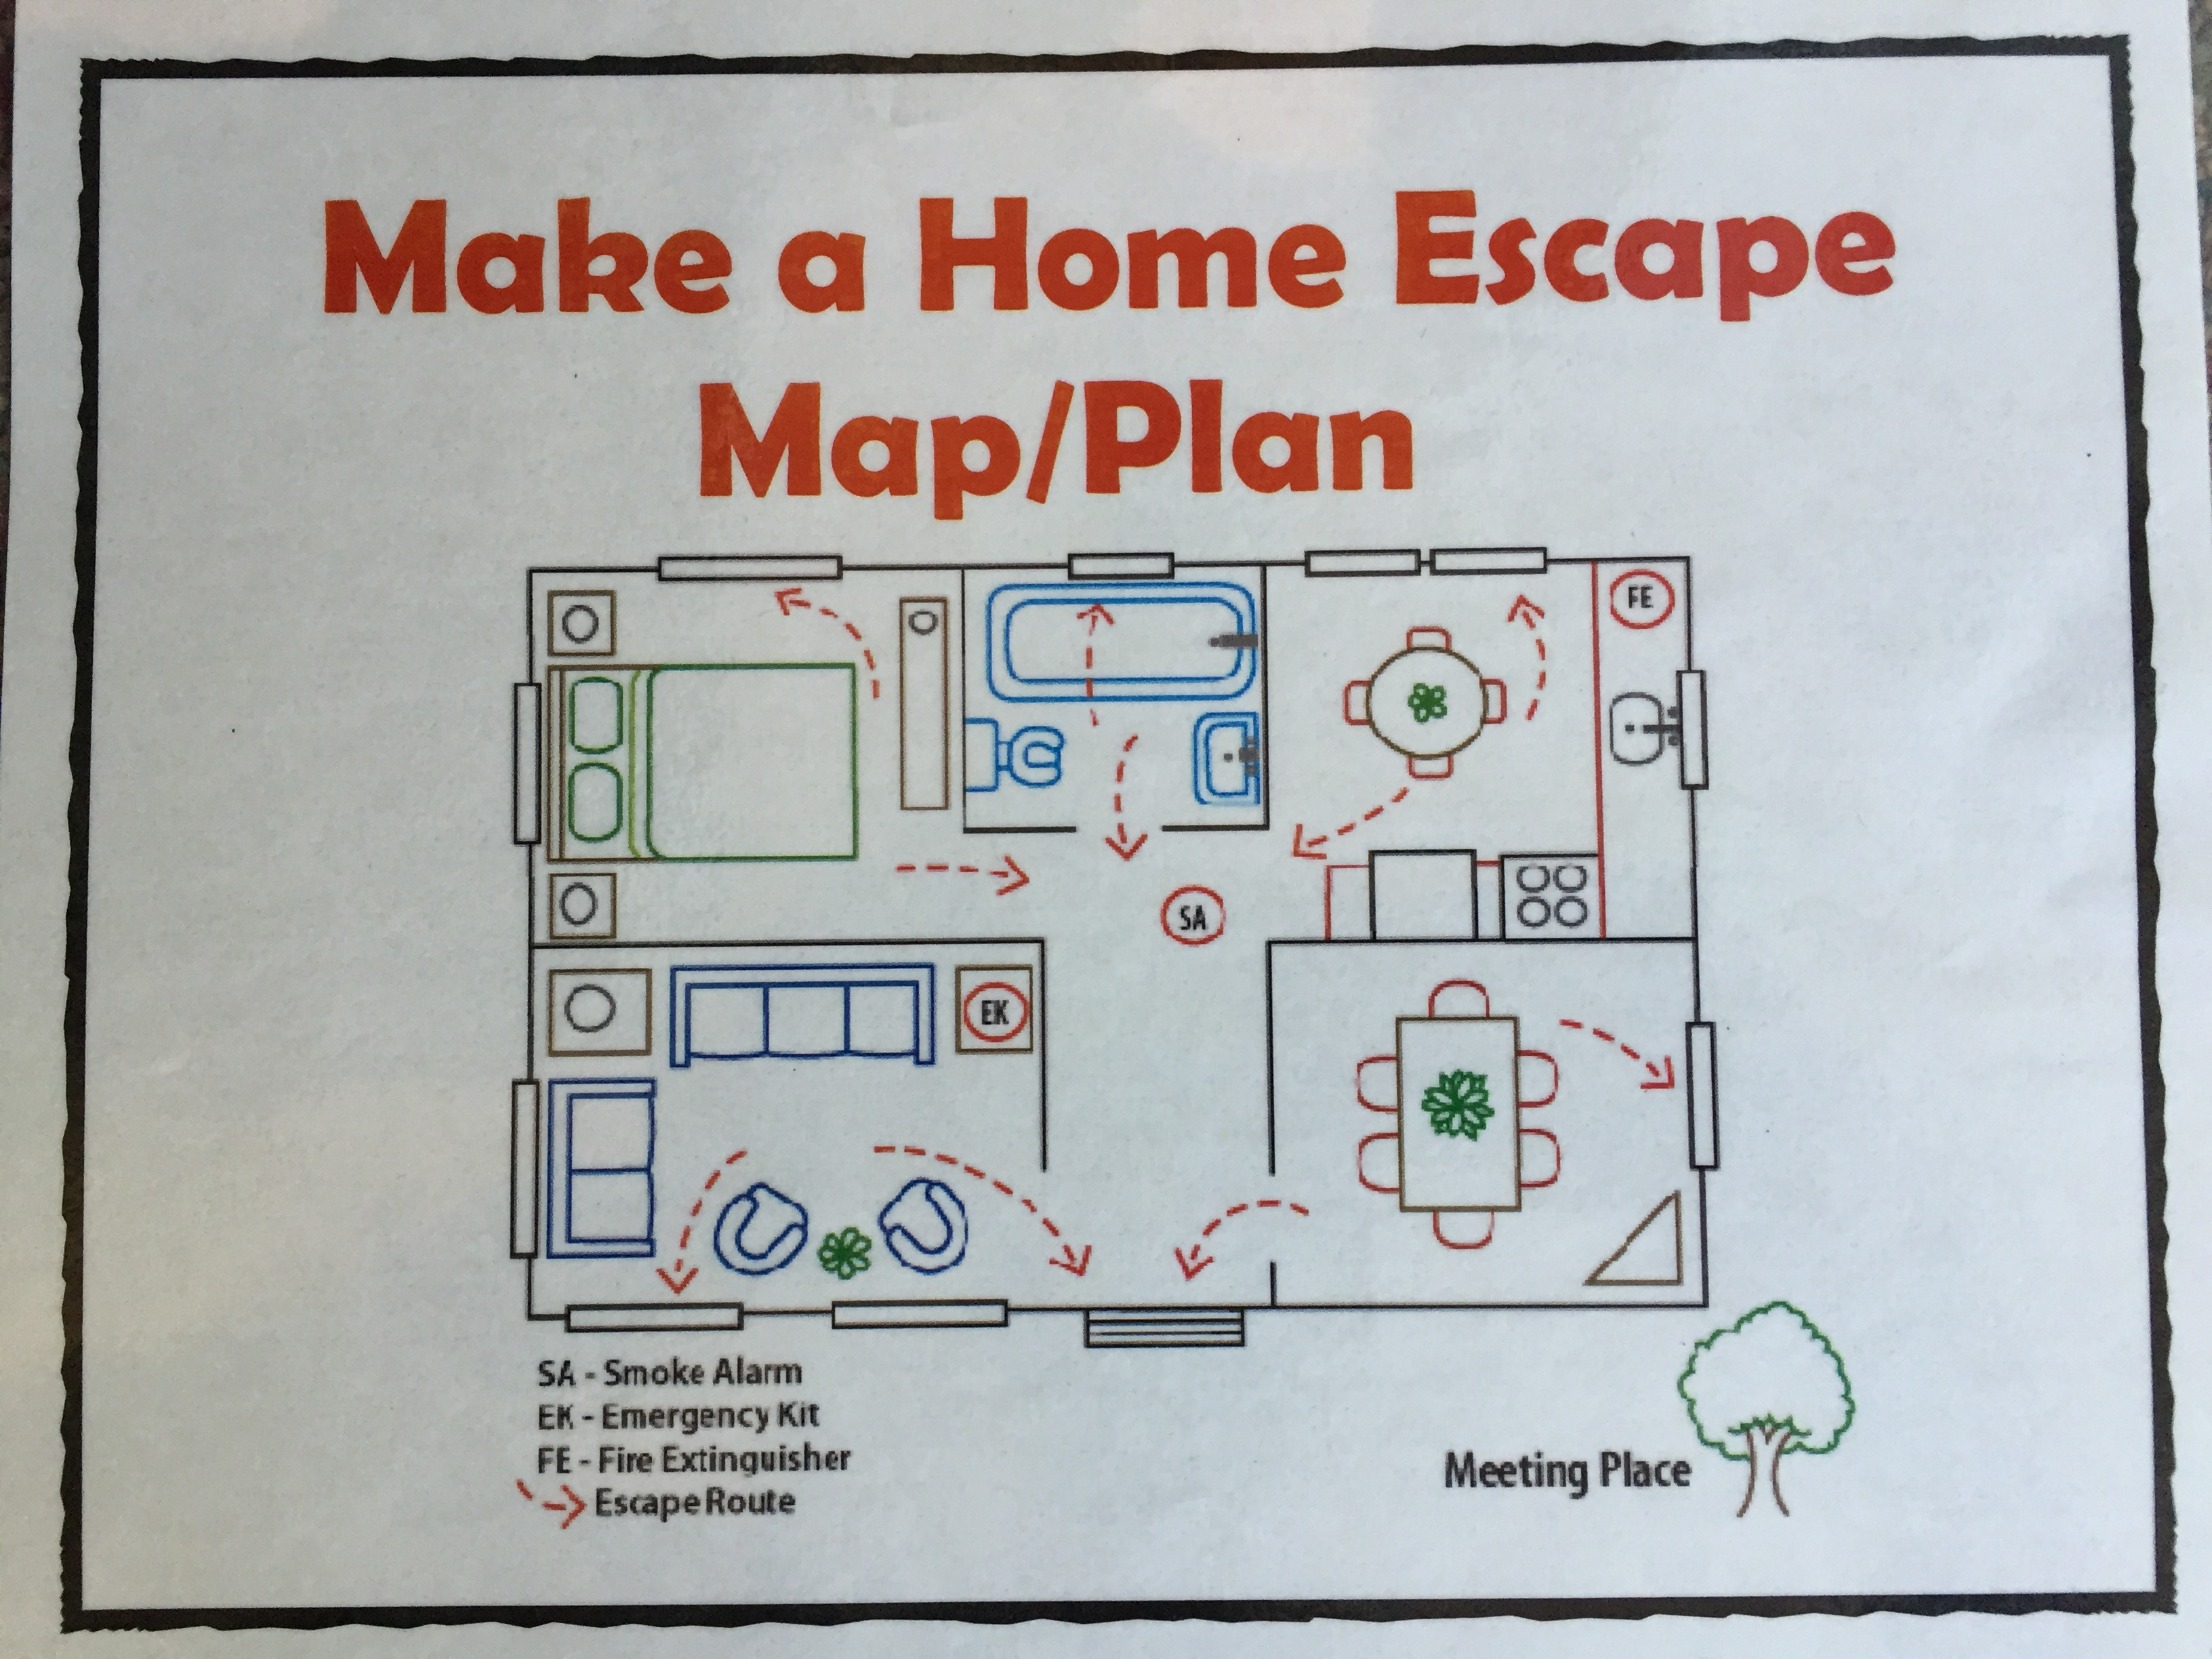 Colorado fire departments encourage fire for How to make a home fire escape plan